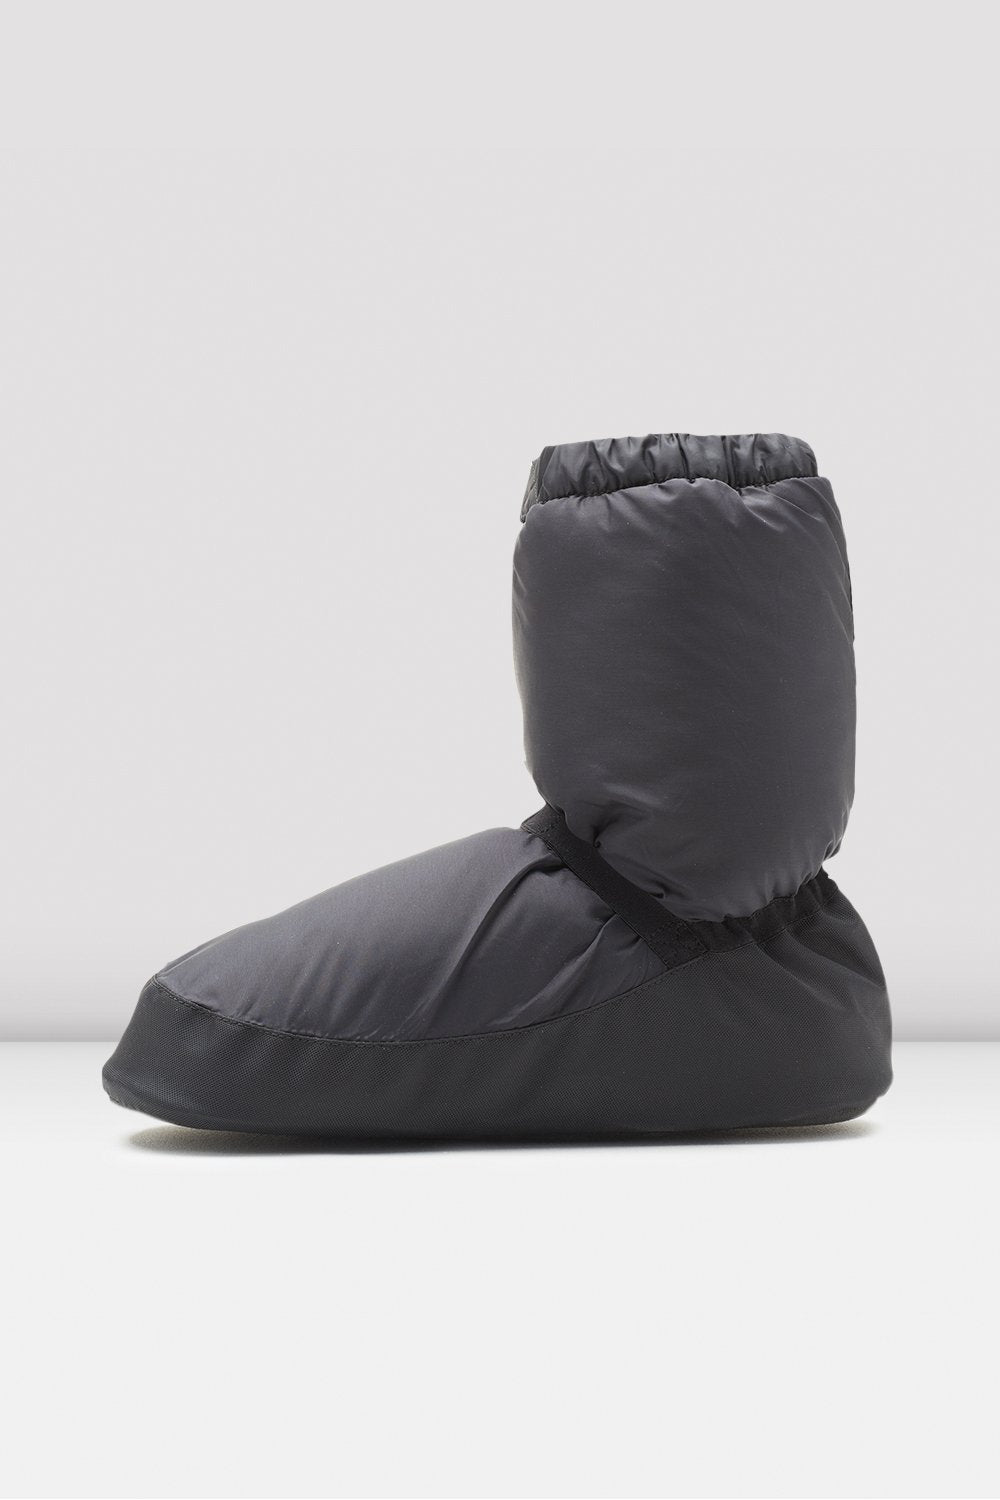 Adult Warm Up Booties - BLOCH US